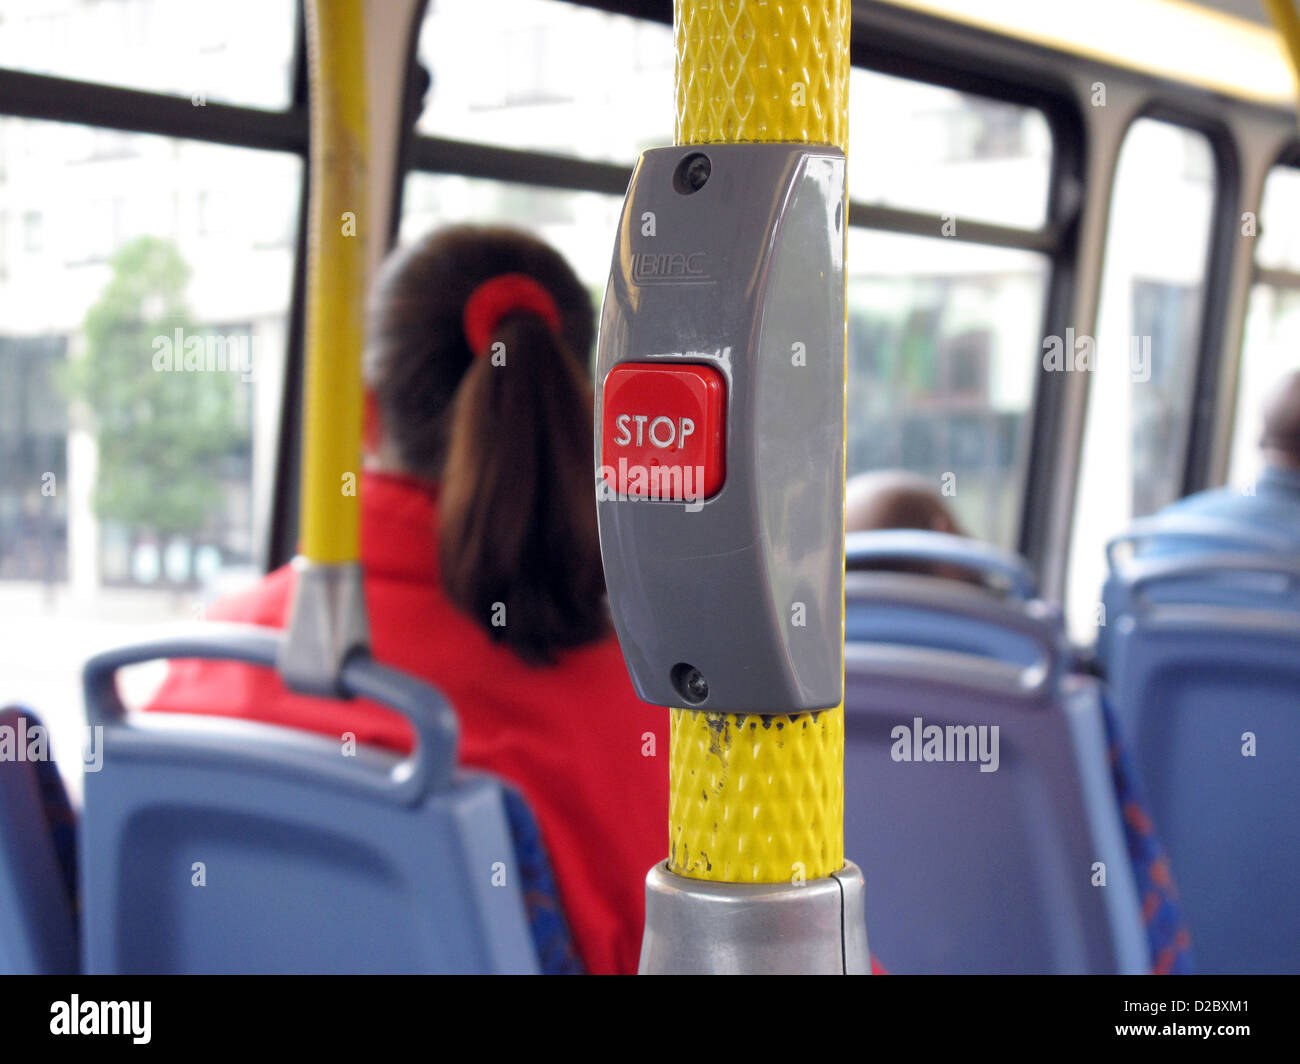 London, United Kingdom, stop request button in a double-decker bus - Stock Image